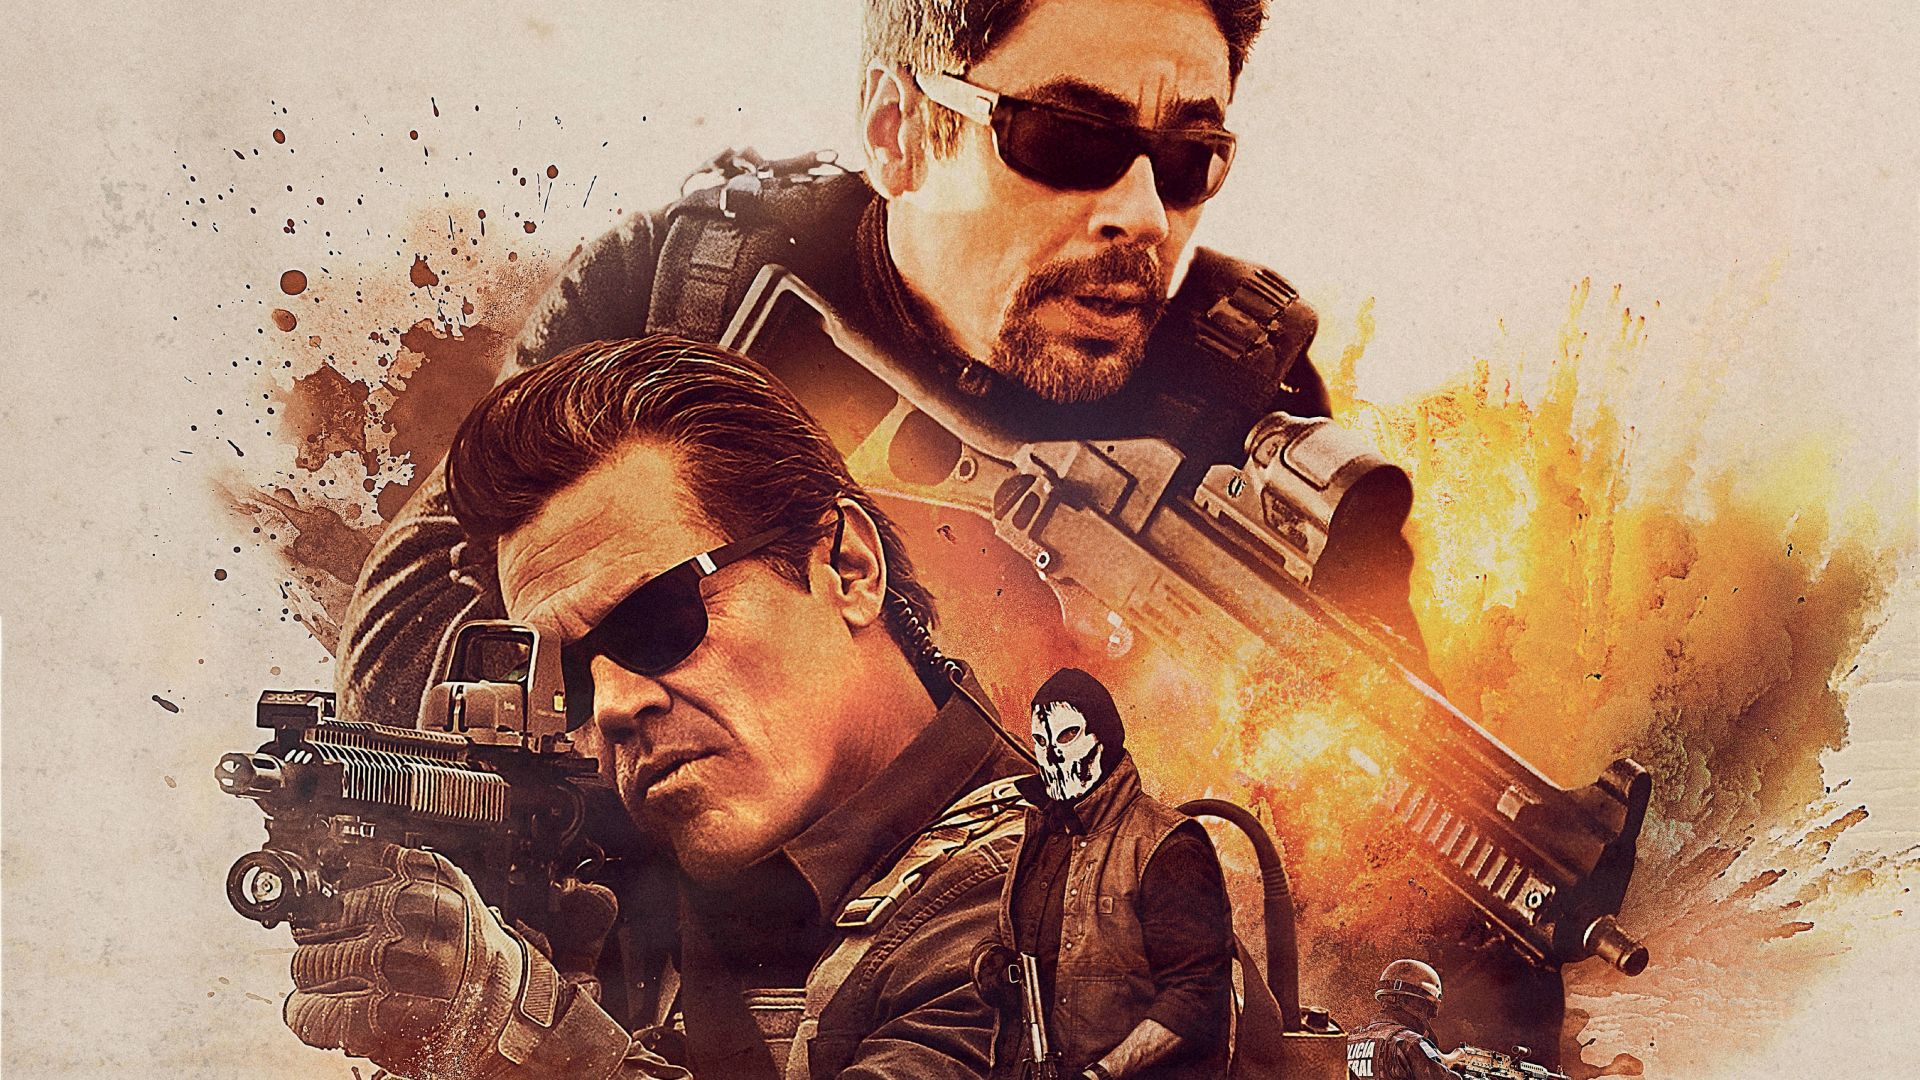 Sicario: Day Of The Soldado, Josh Brolin, Benicio Del Toro, poster, 5K (horizontal)